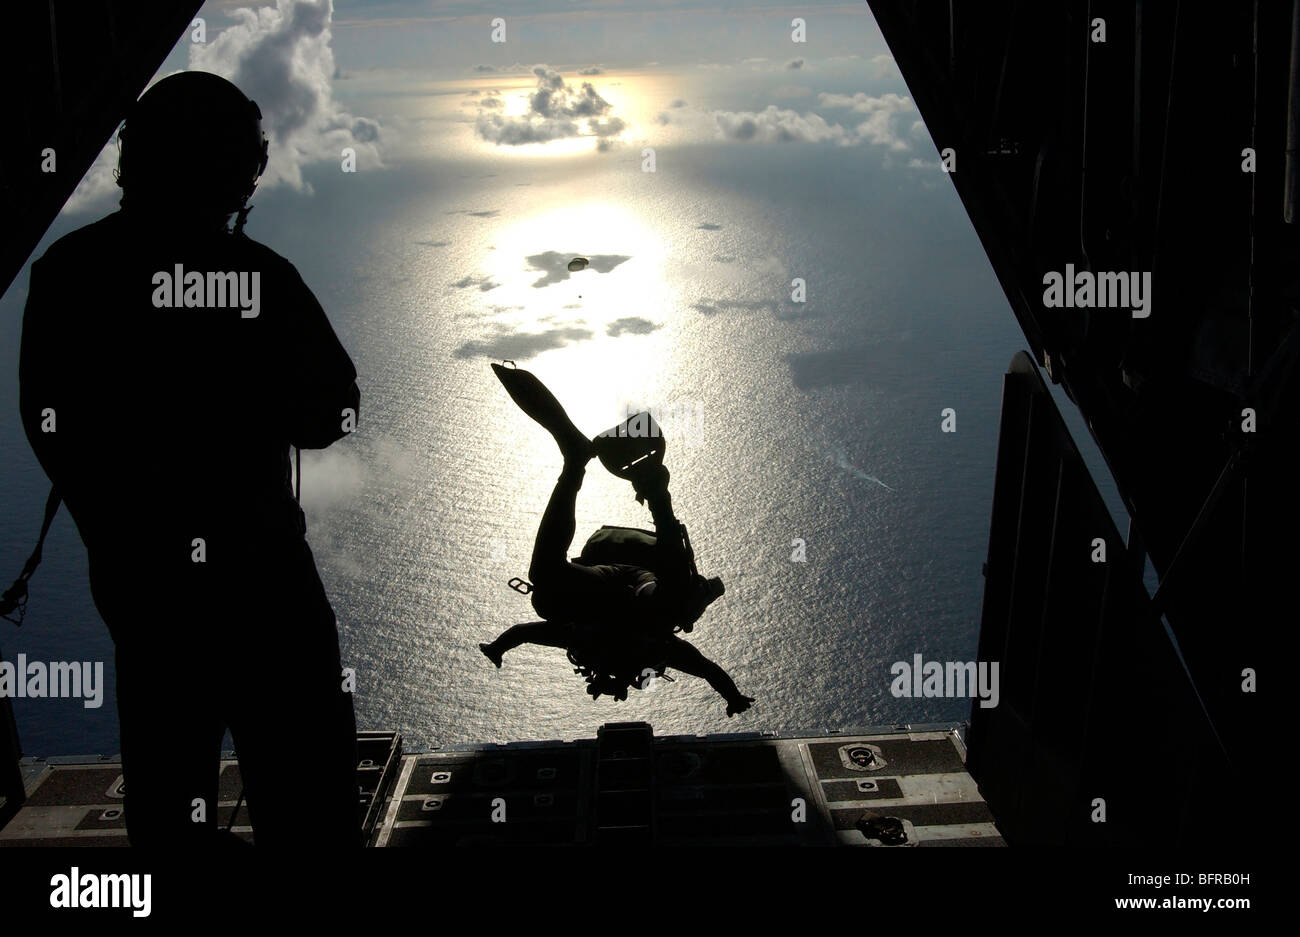 An Air Force pararescueman jumps out of the back of an HC-130 Hercules. - Stock Image